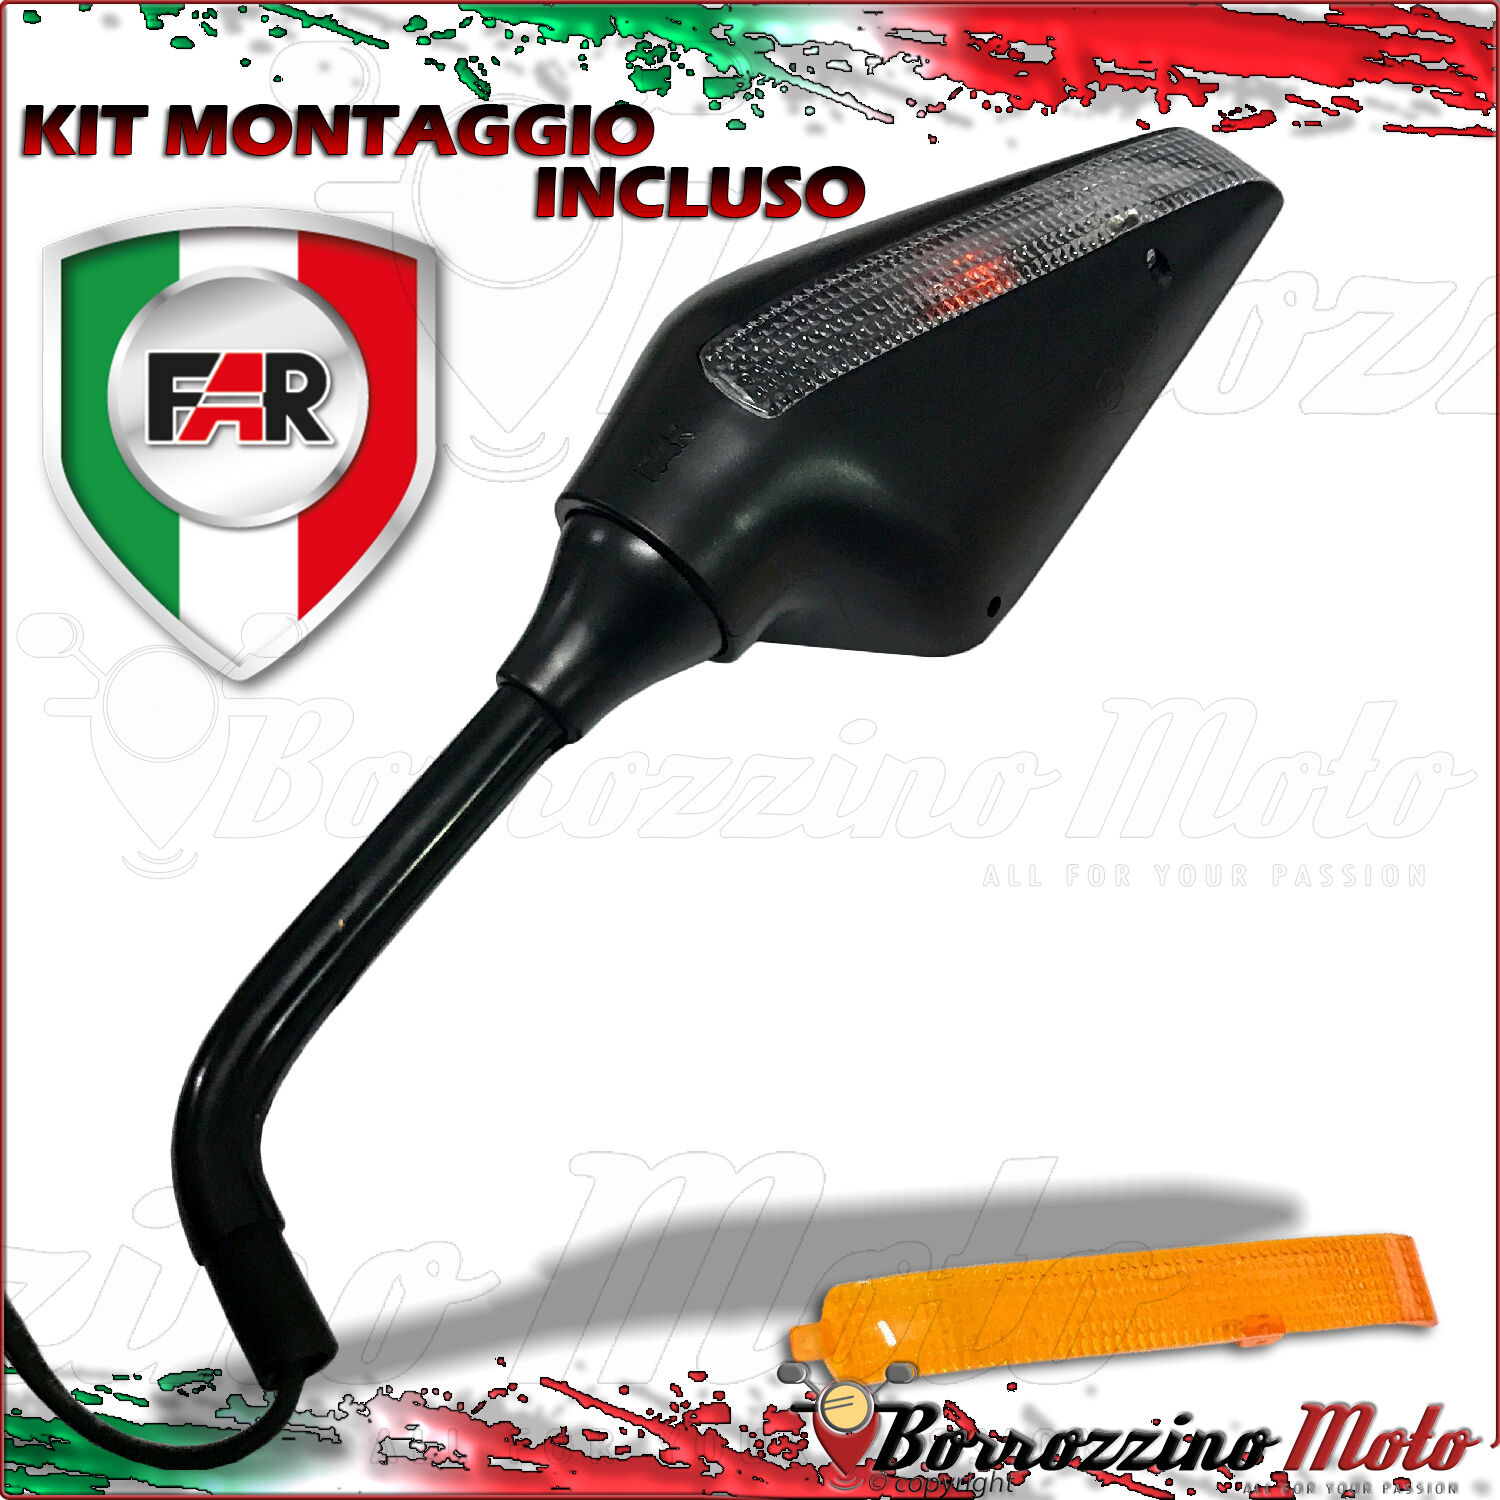 Dlll 2/ x Fit lama laterale specchietto retrovisore per moto Street standard Naked Bike Cruiser chopper Fits 8/ mm 10/ mm bulloni di fissaggio